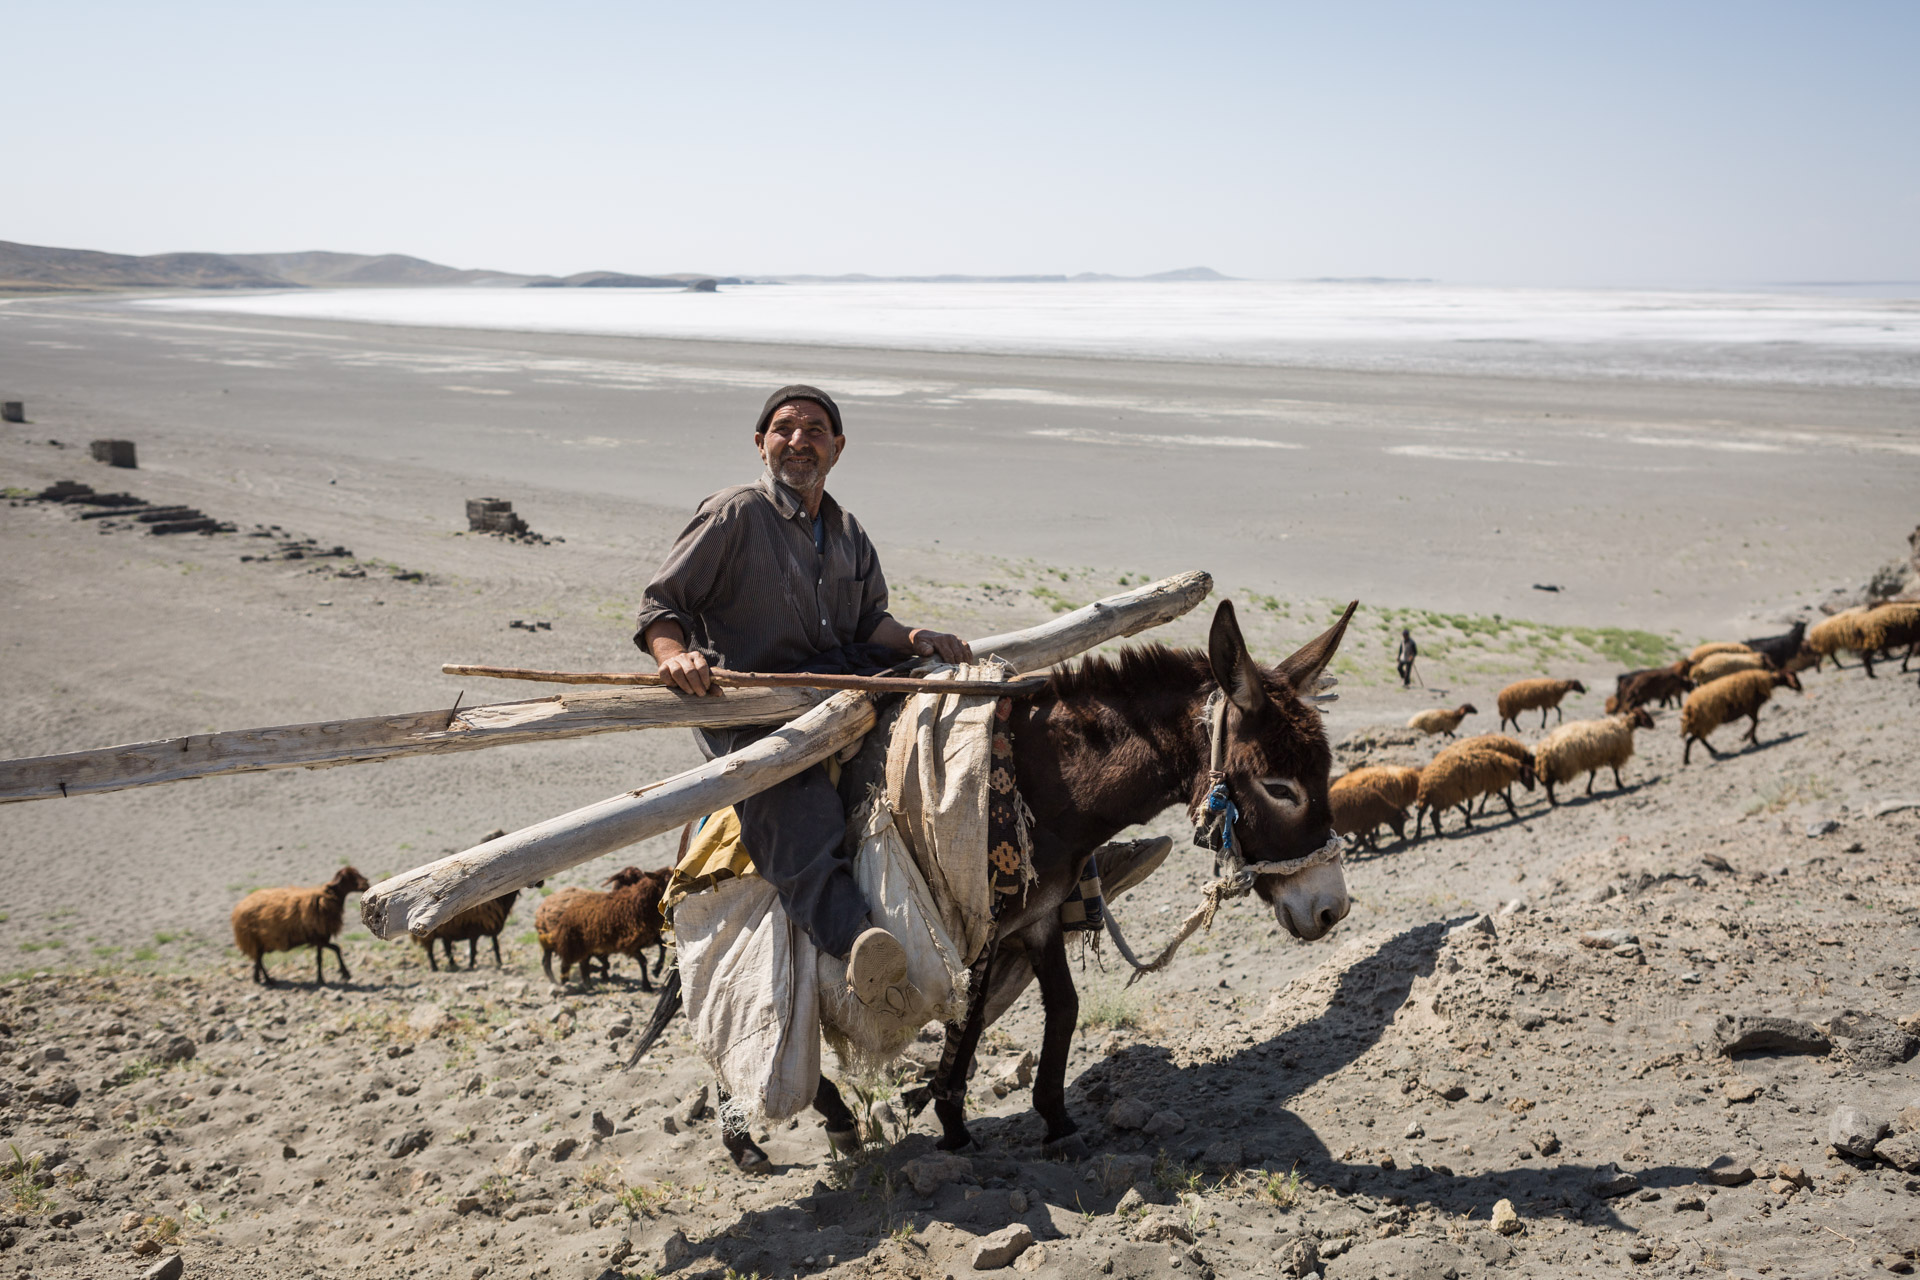 A shepherd rides his donkey at Lake Urmia. The shores of the lake used to stretch right behind him, today the white salt left behind by the vanishing water is all that can be seen for kilometres.